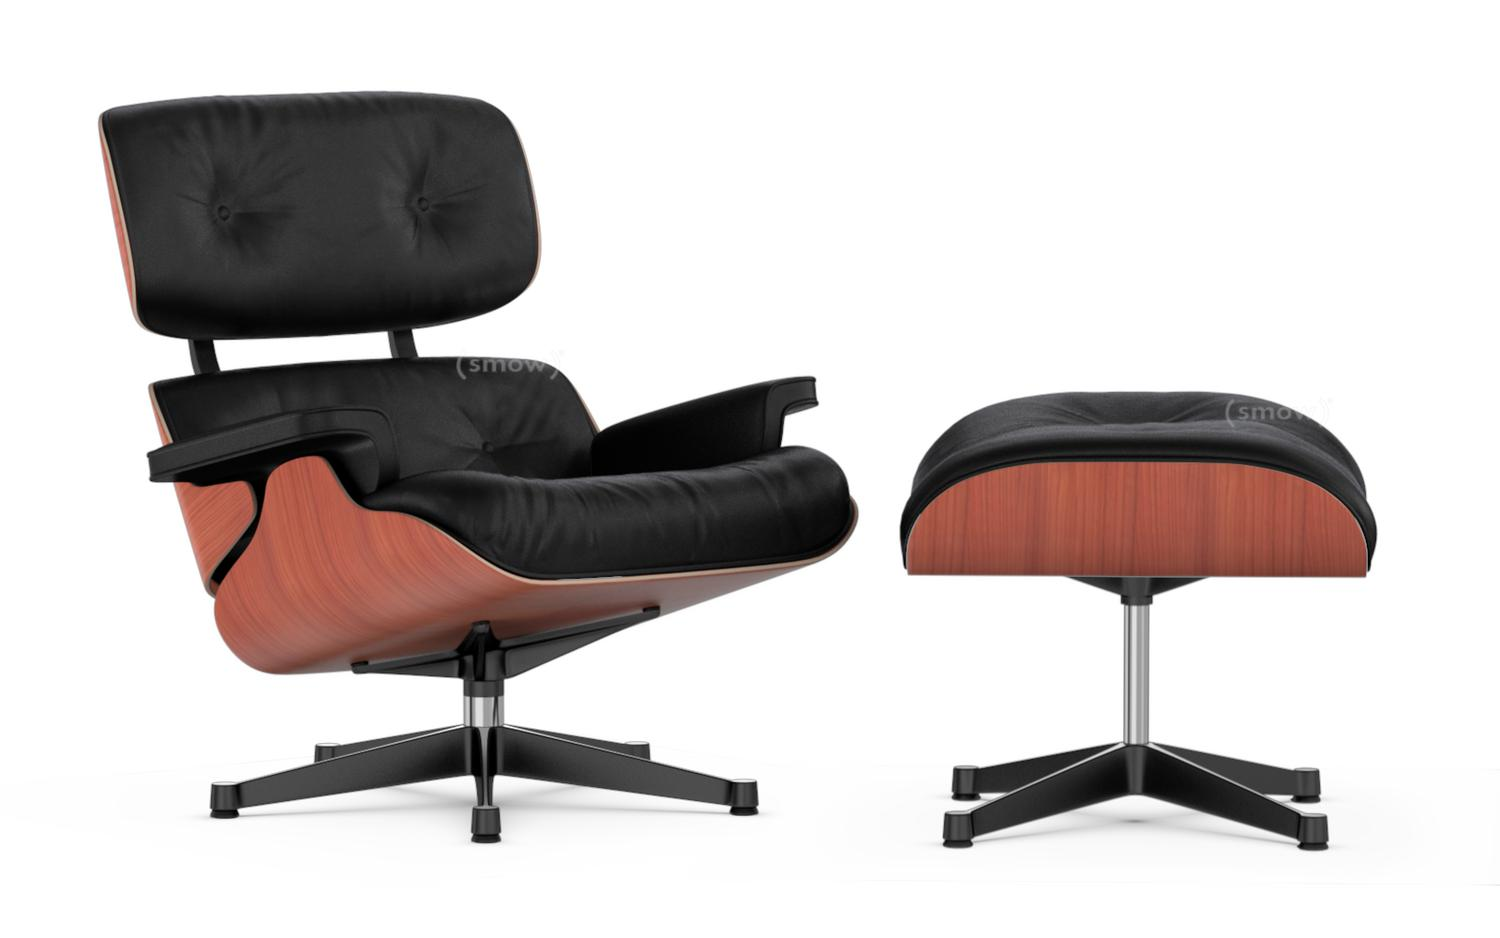 vitra lounge chair ottoman von charles ray eames 1956 designerm bel von. Black Bedroom Furniture Sets. Home Design Ideas